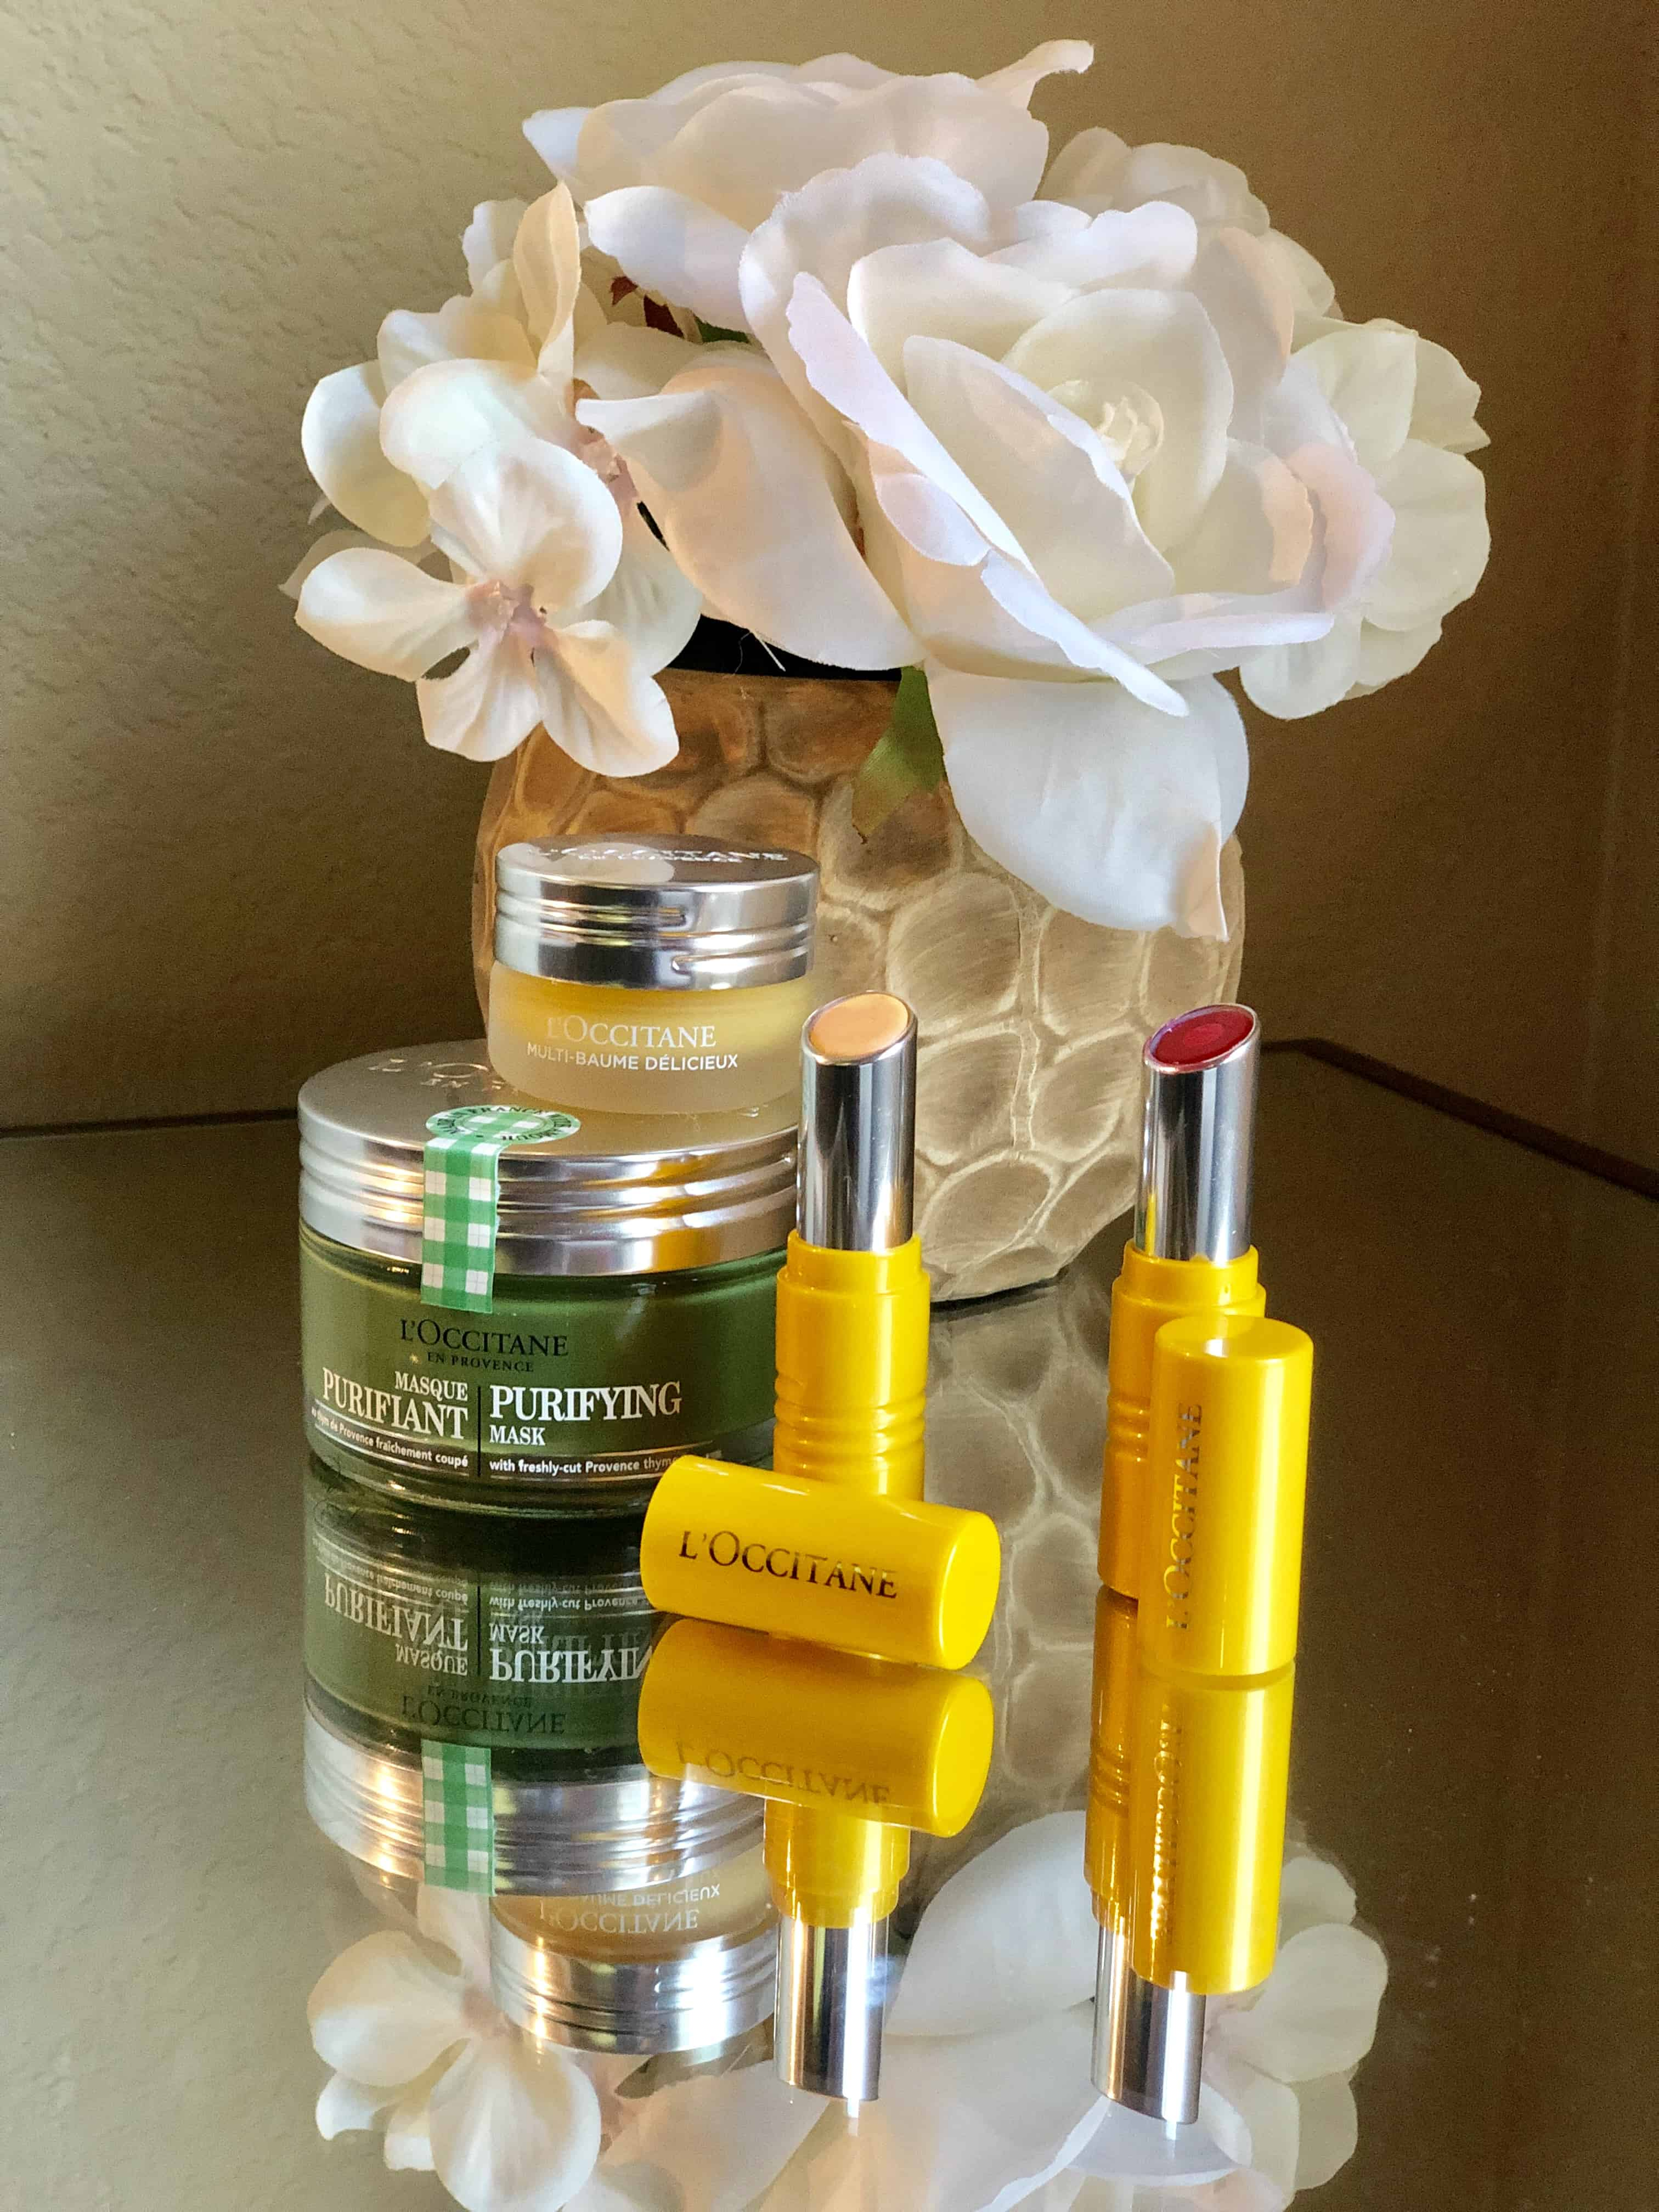 loccitane products